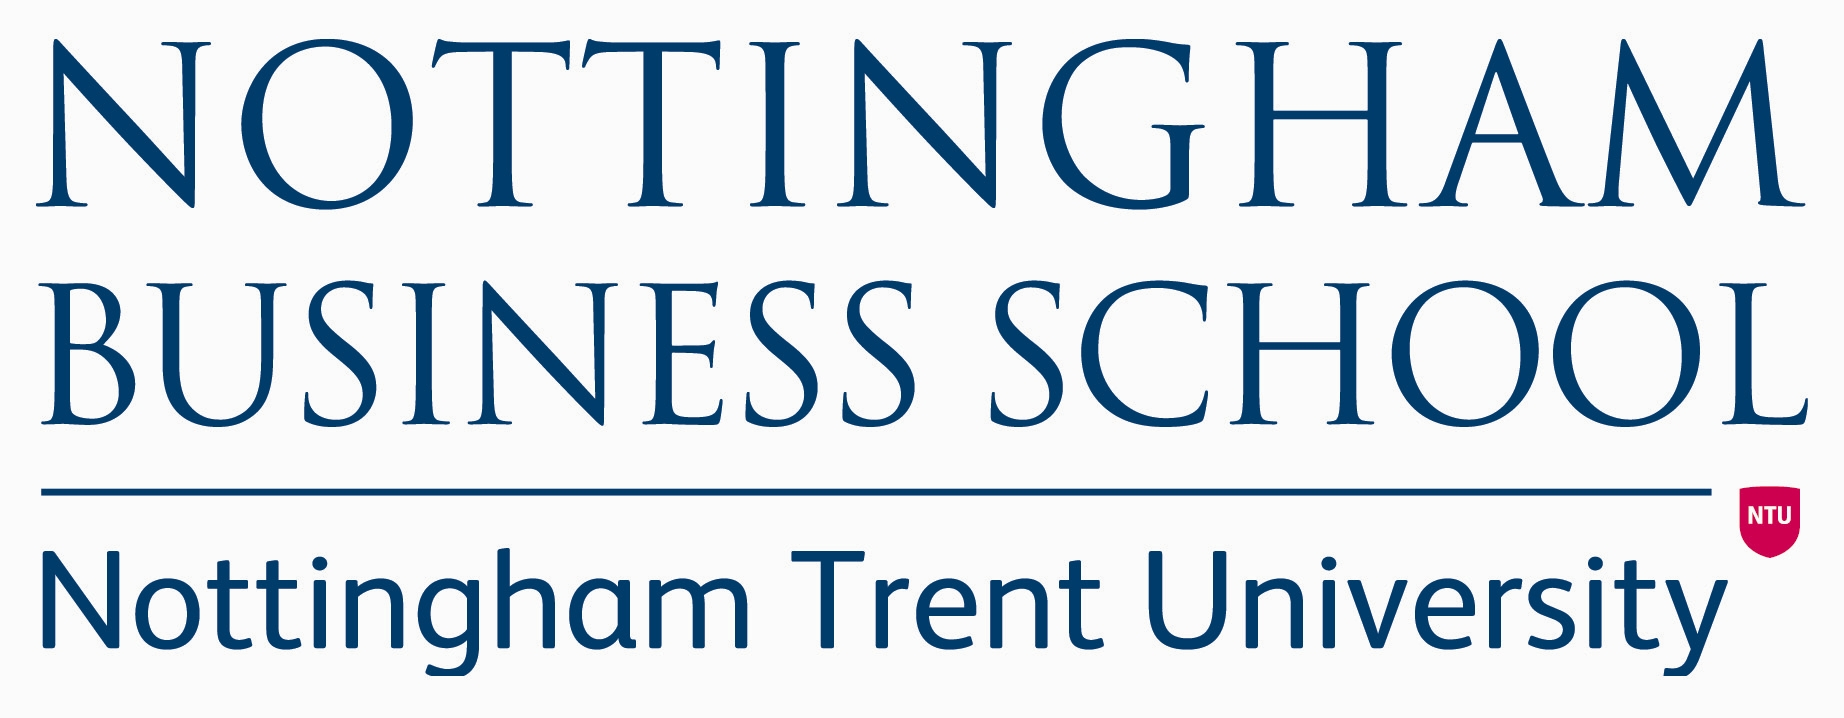 Logo Nottingham Trent University - Nottingham Business School